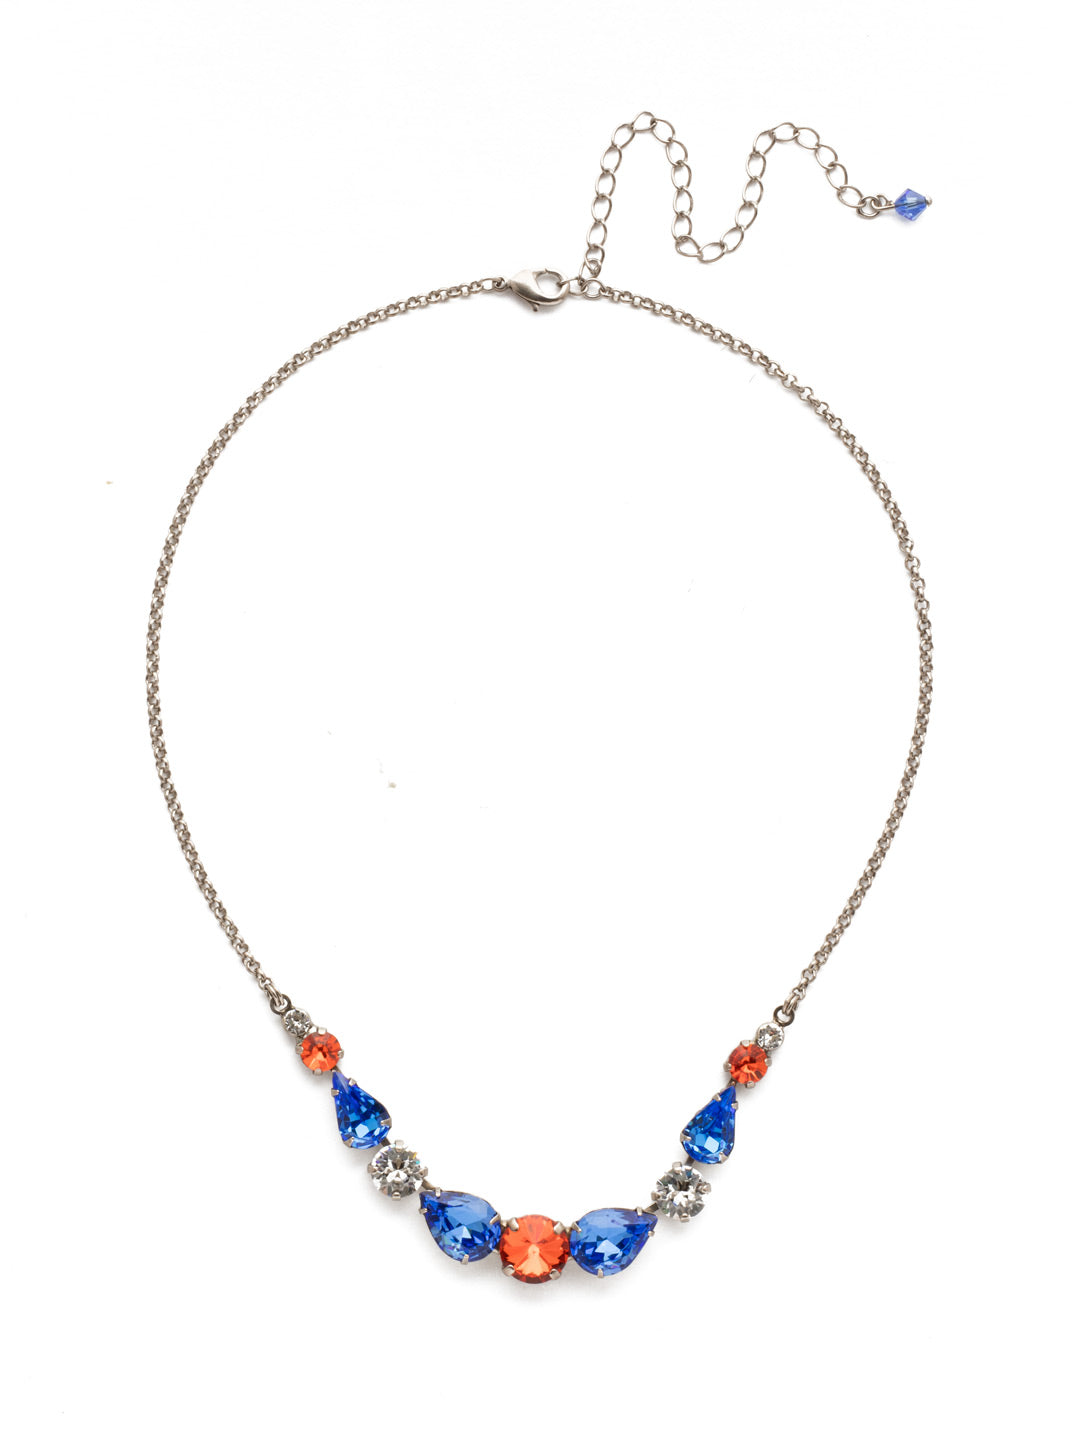 Polished Pear Statement Necklace - NDN74ASOCR